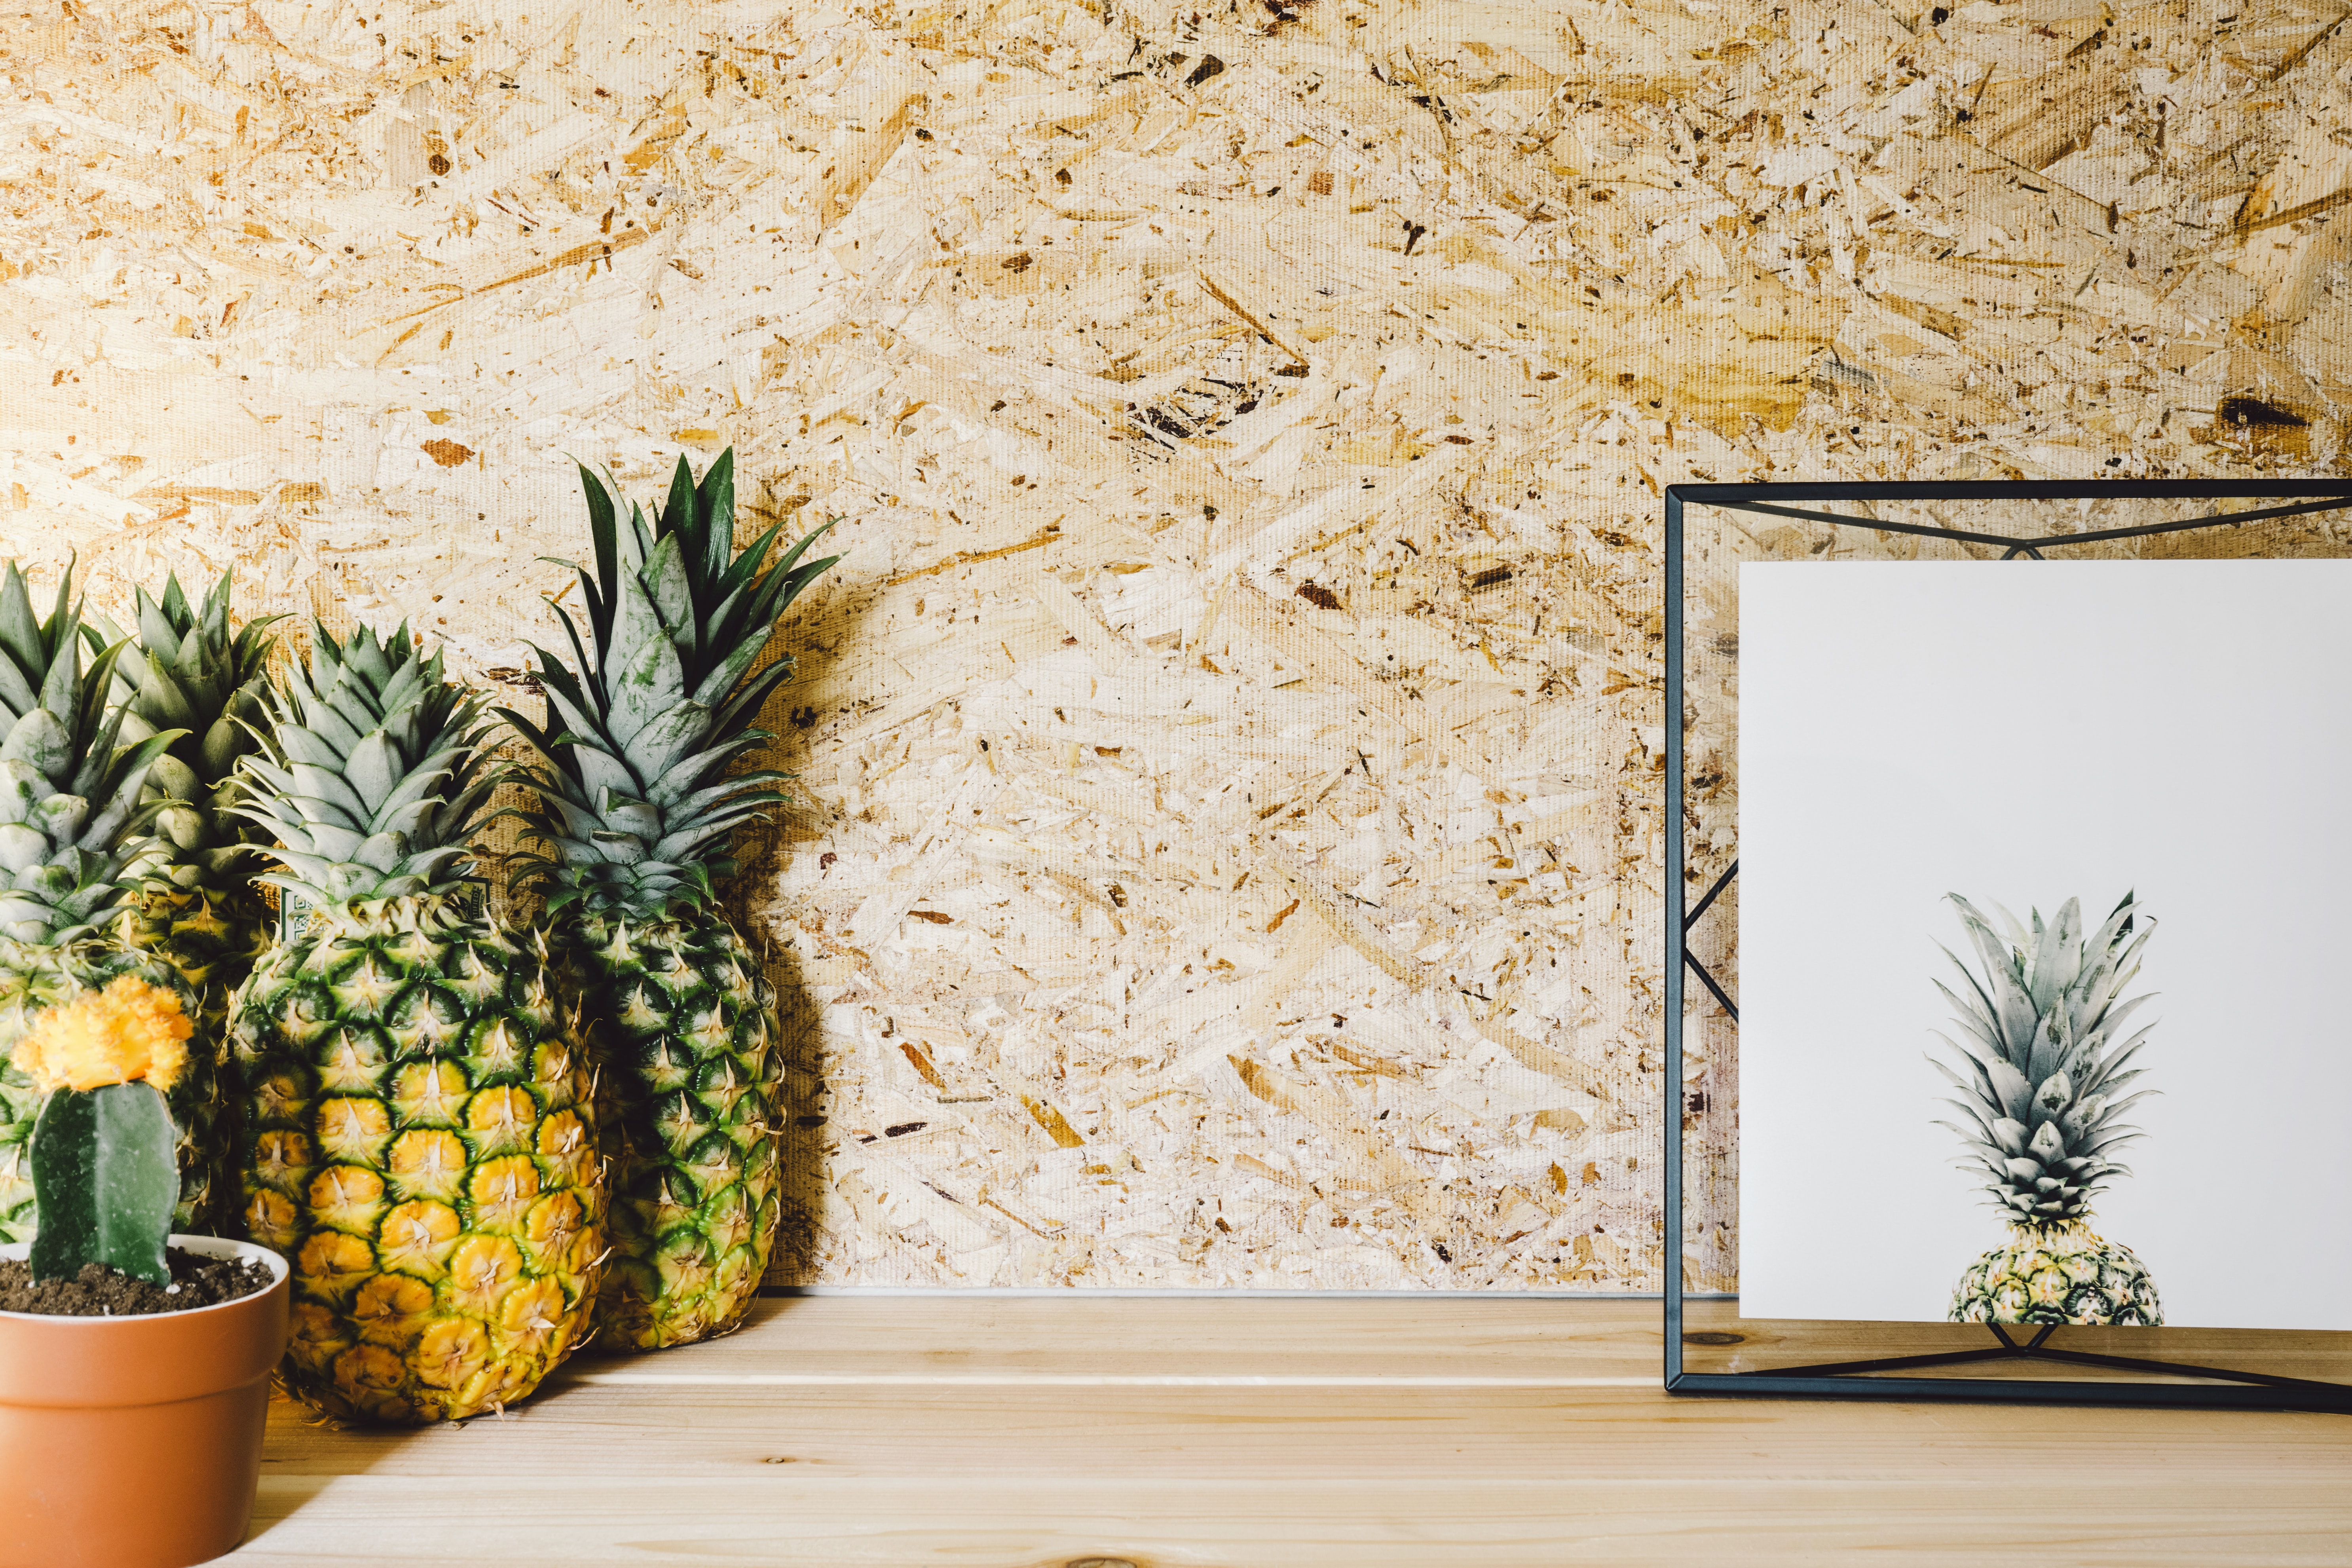 A group of pineapples next to a cactus plant and picture frame.